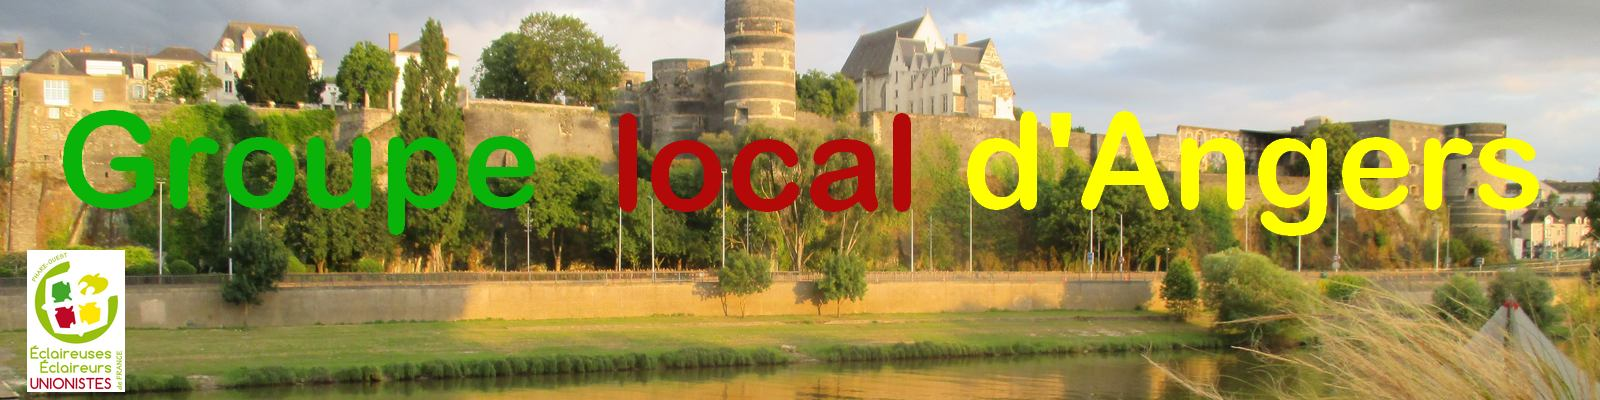 http://eeudf.org/angers/wp-content/uploads/sites/34/2016/10/bandeau_angers.jpg